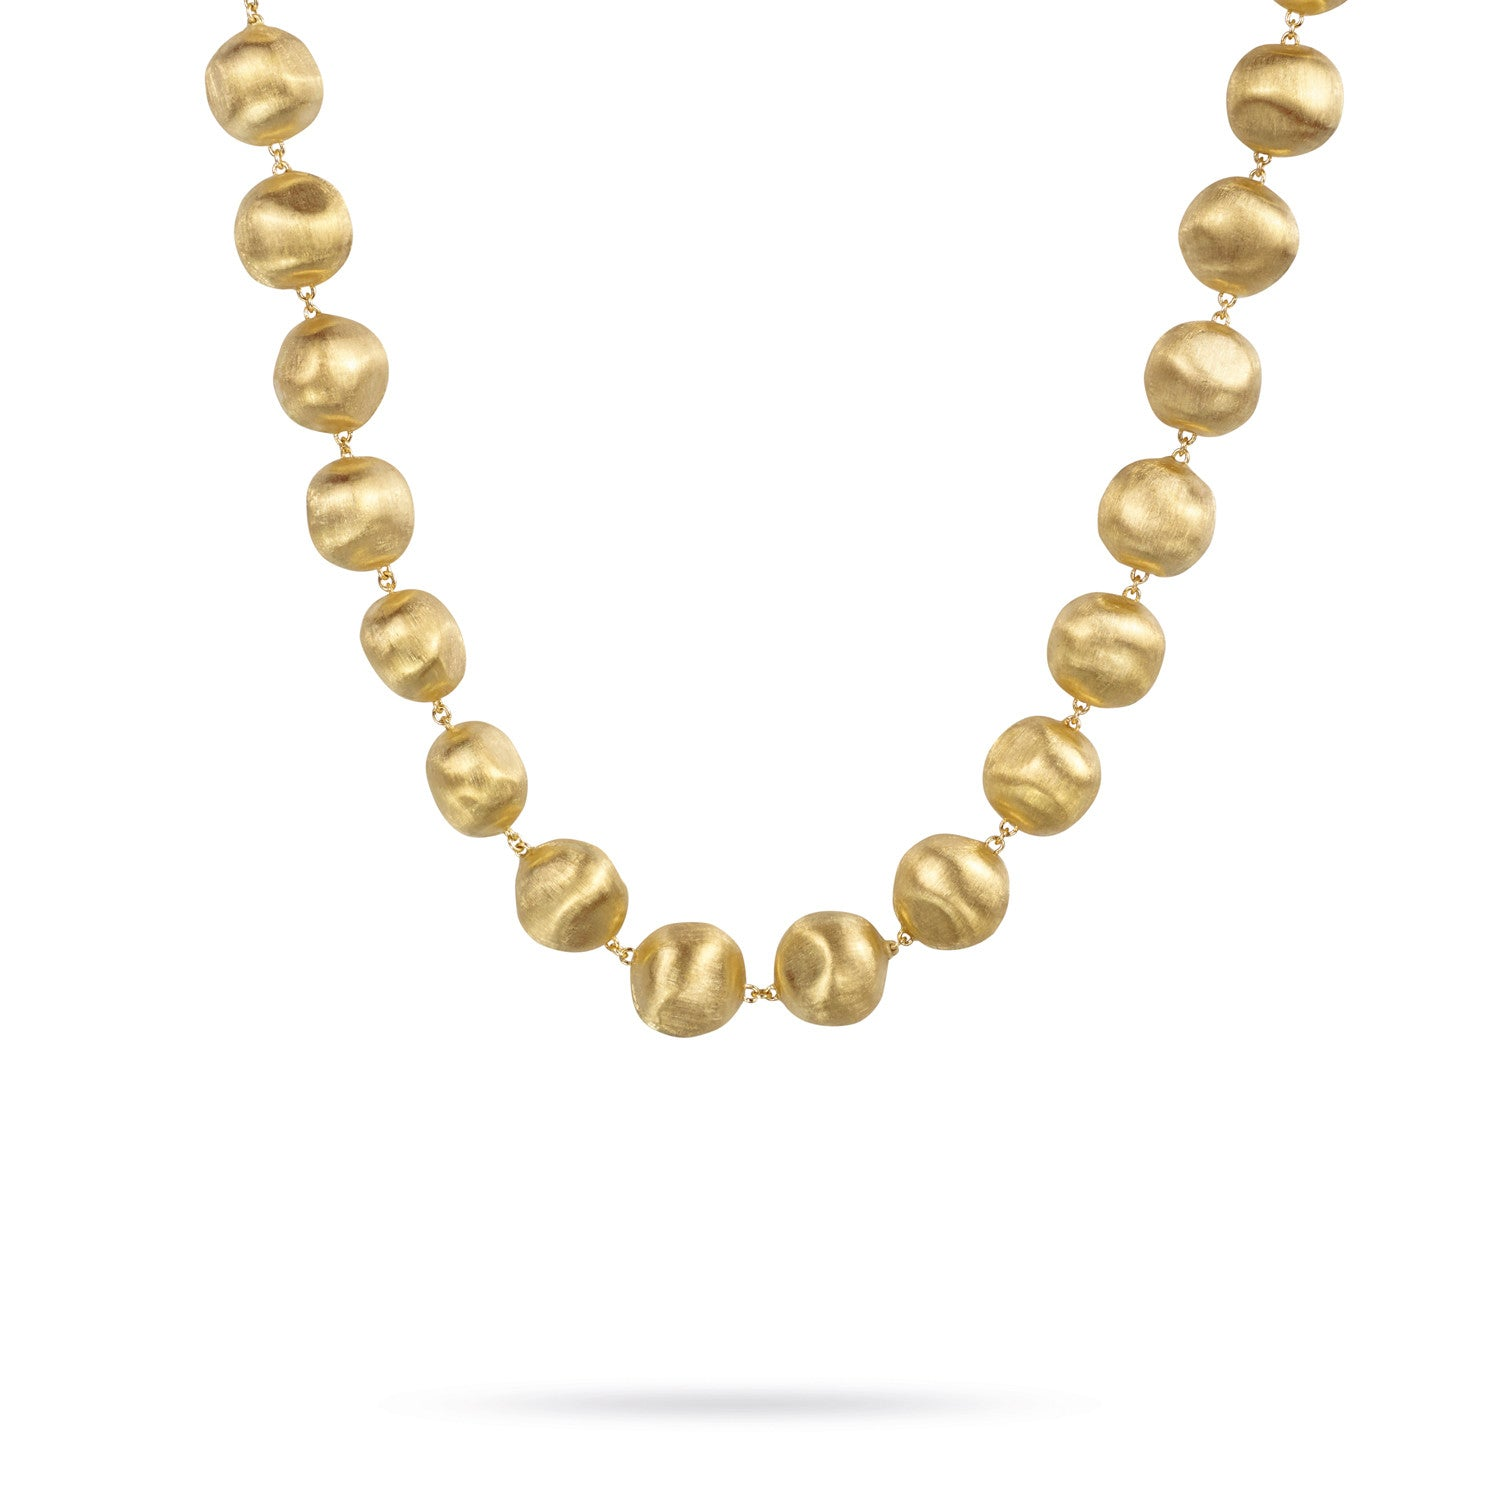 Africa Necklace in 18k Yellow Gold with Medium Sized Balls - 46cm - Orsini Jewellers NZ